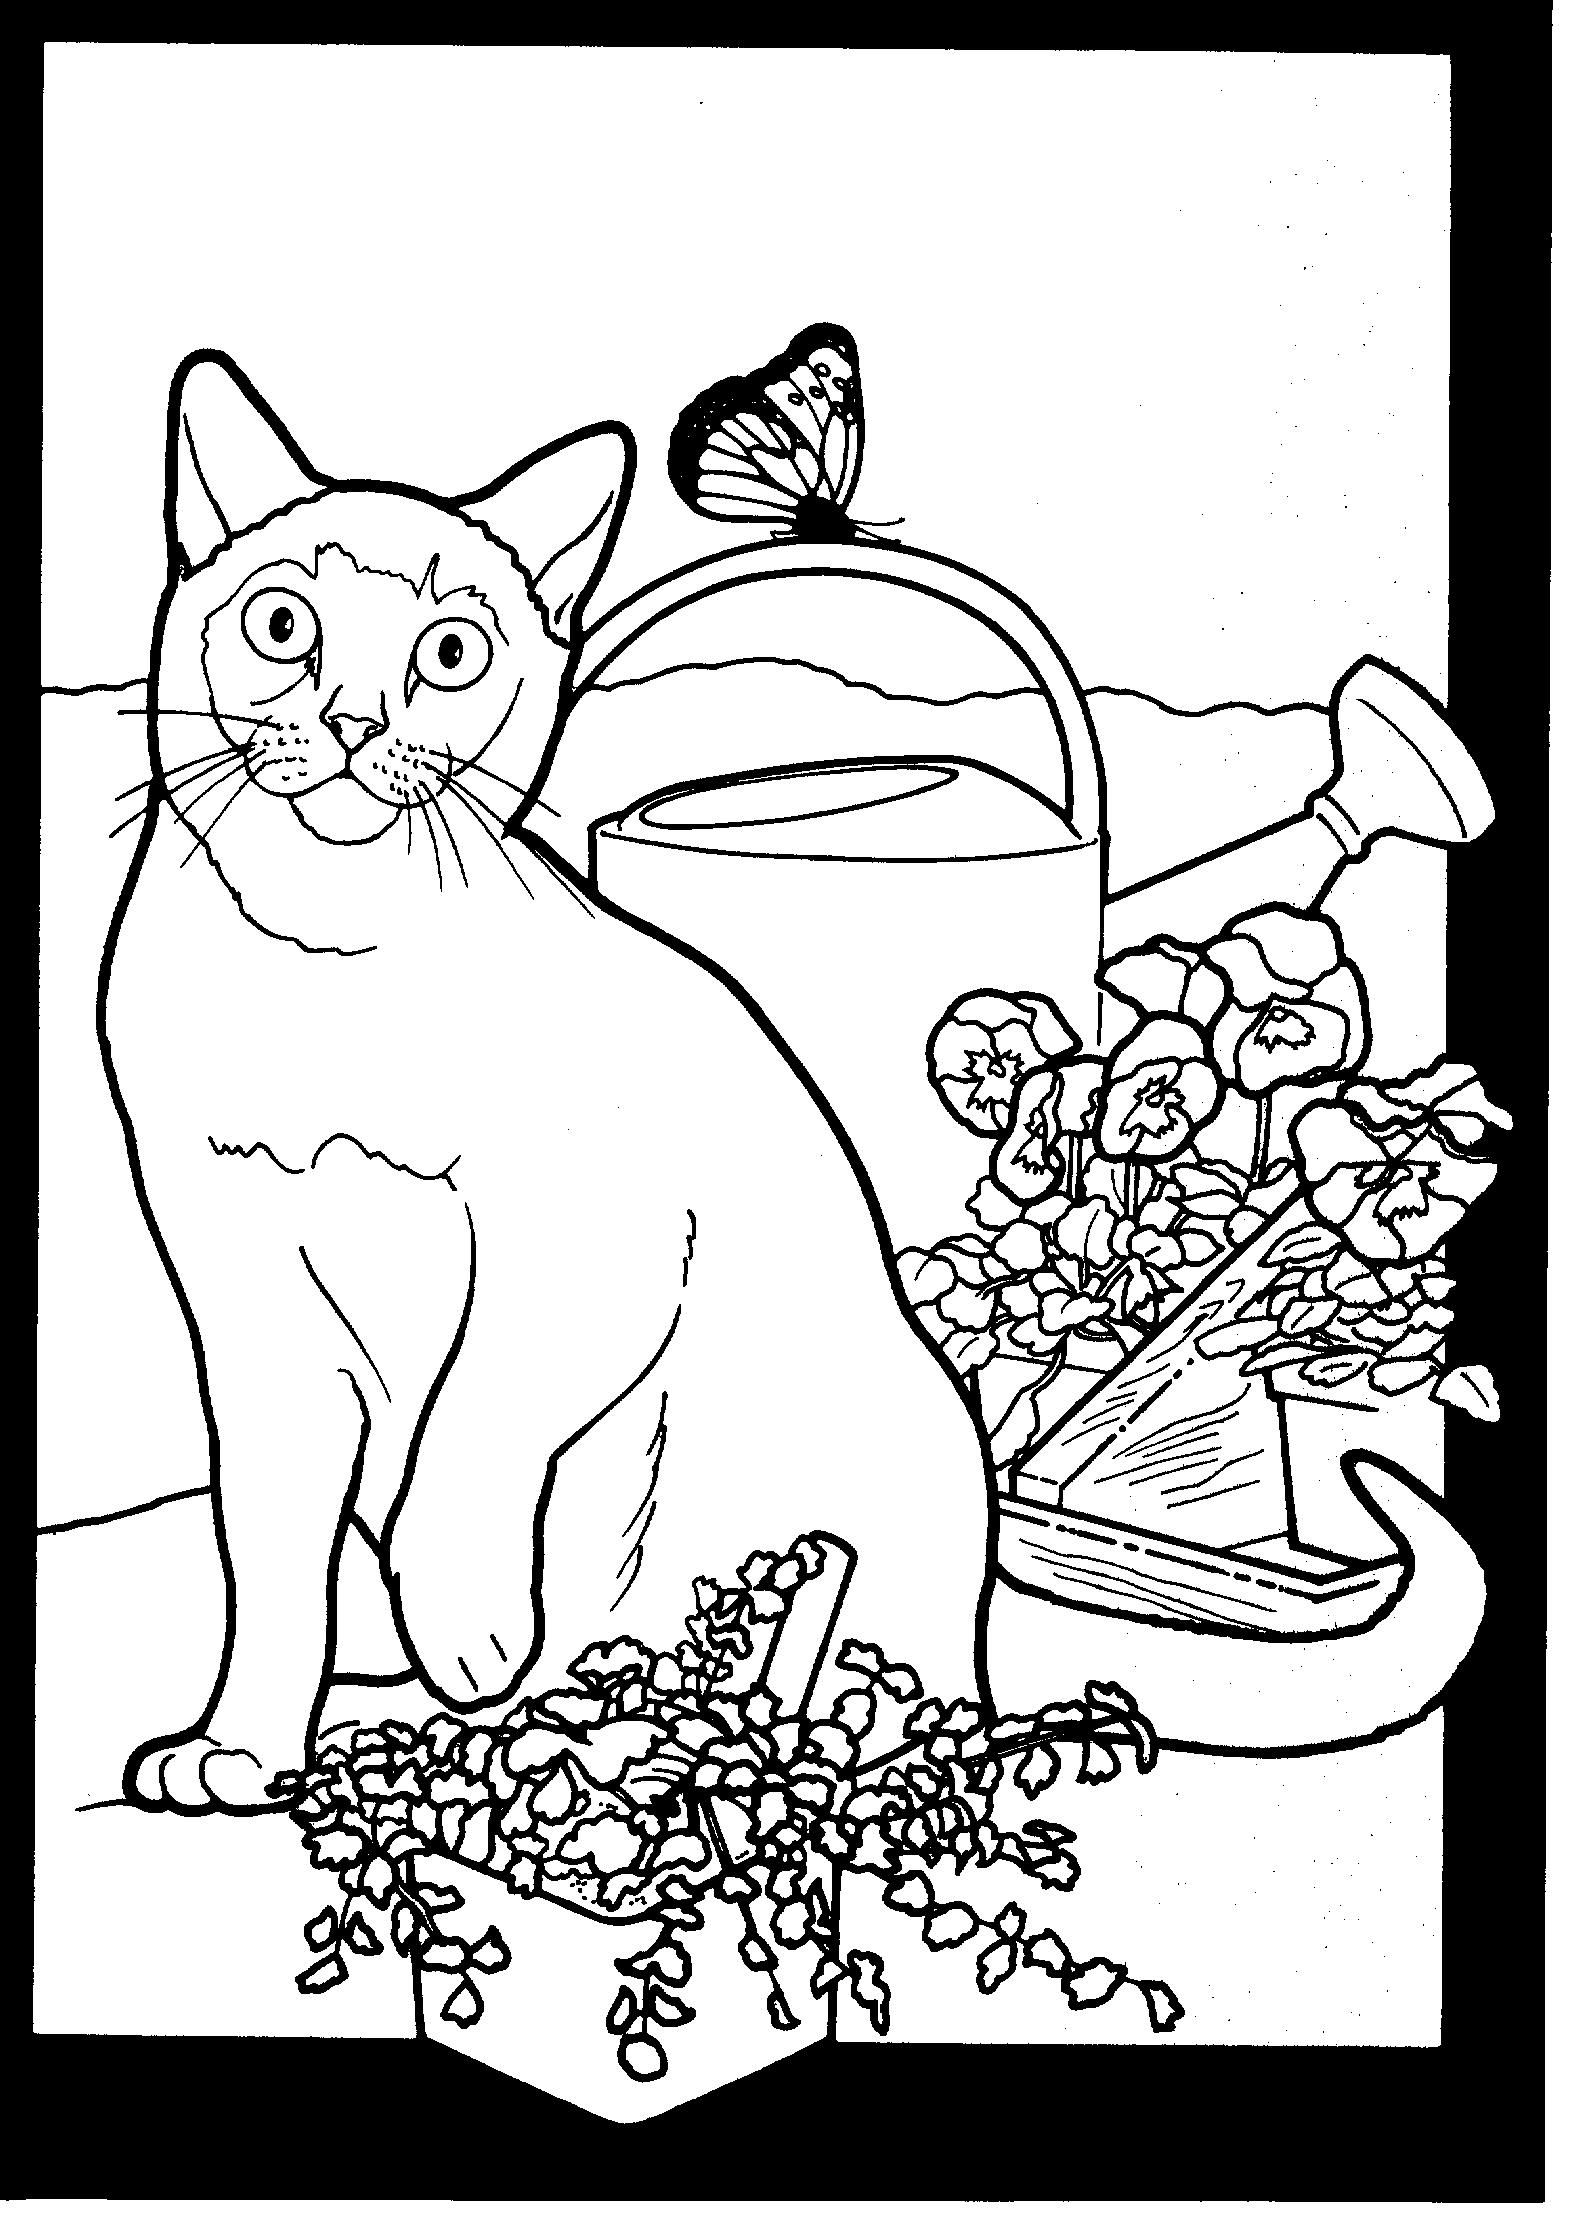 Garden Cat Cat coloring page, Coloring pages, Cat and